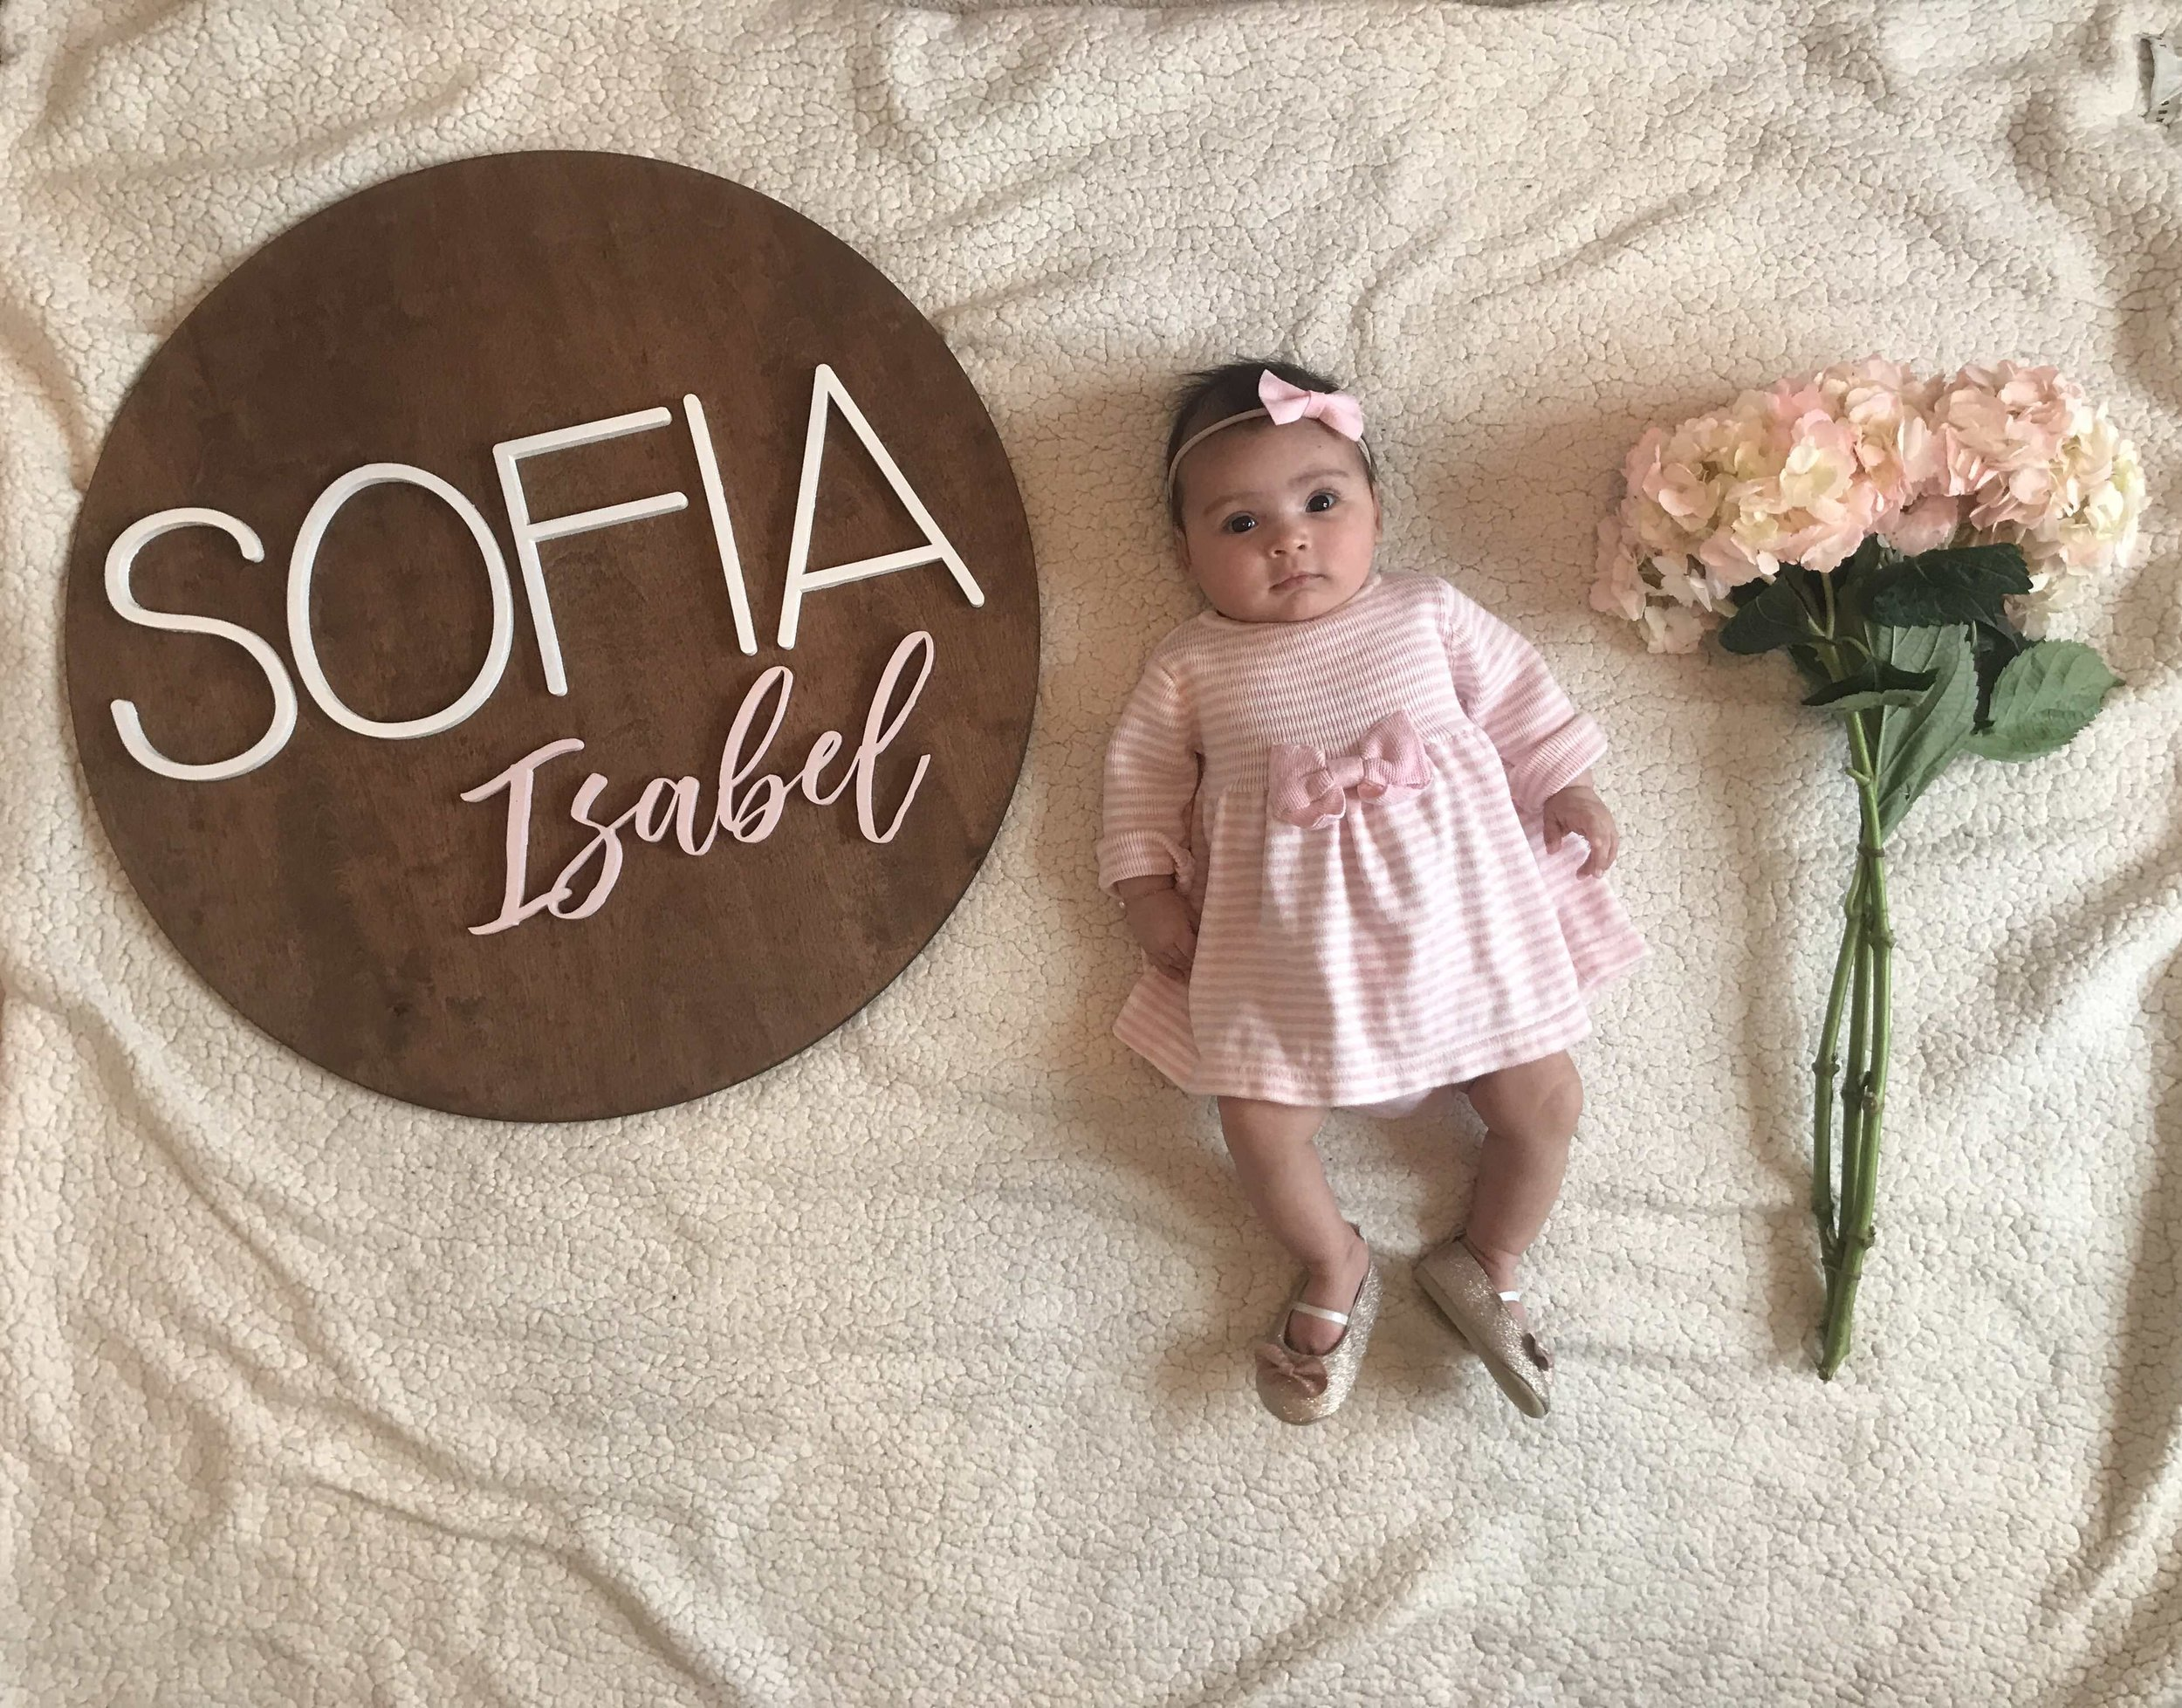 Our 2 months old daughter Sofia Isabel